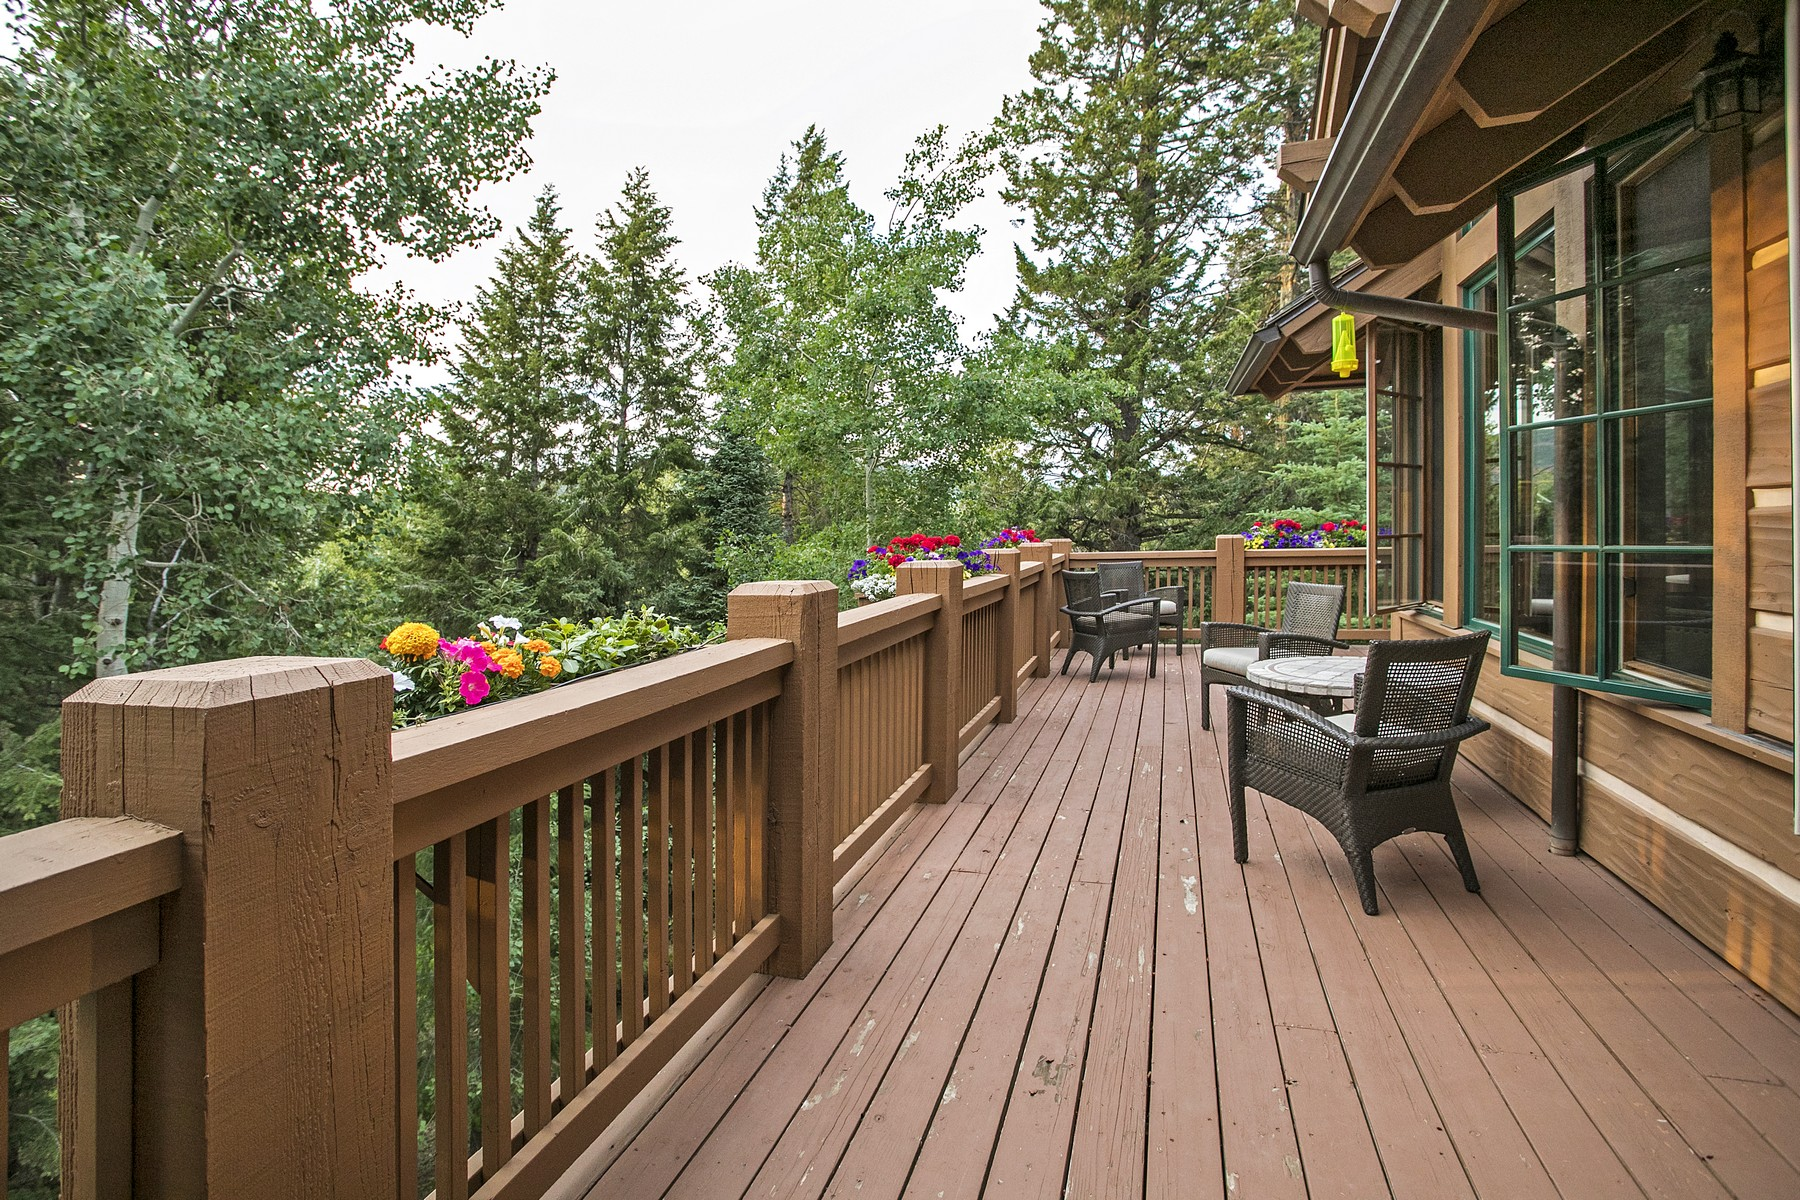 Additional photo for property listing at 45 Graham Road 45 Graham Road Edwards, Colorado 81632 United States